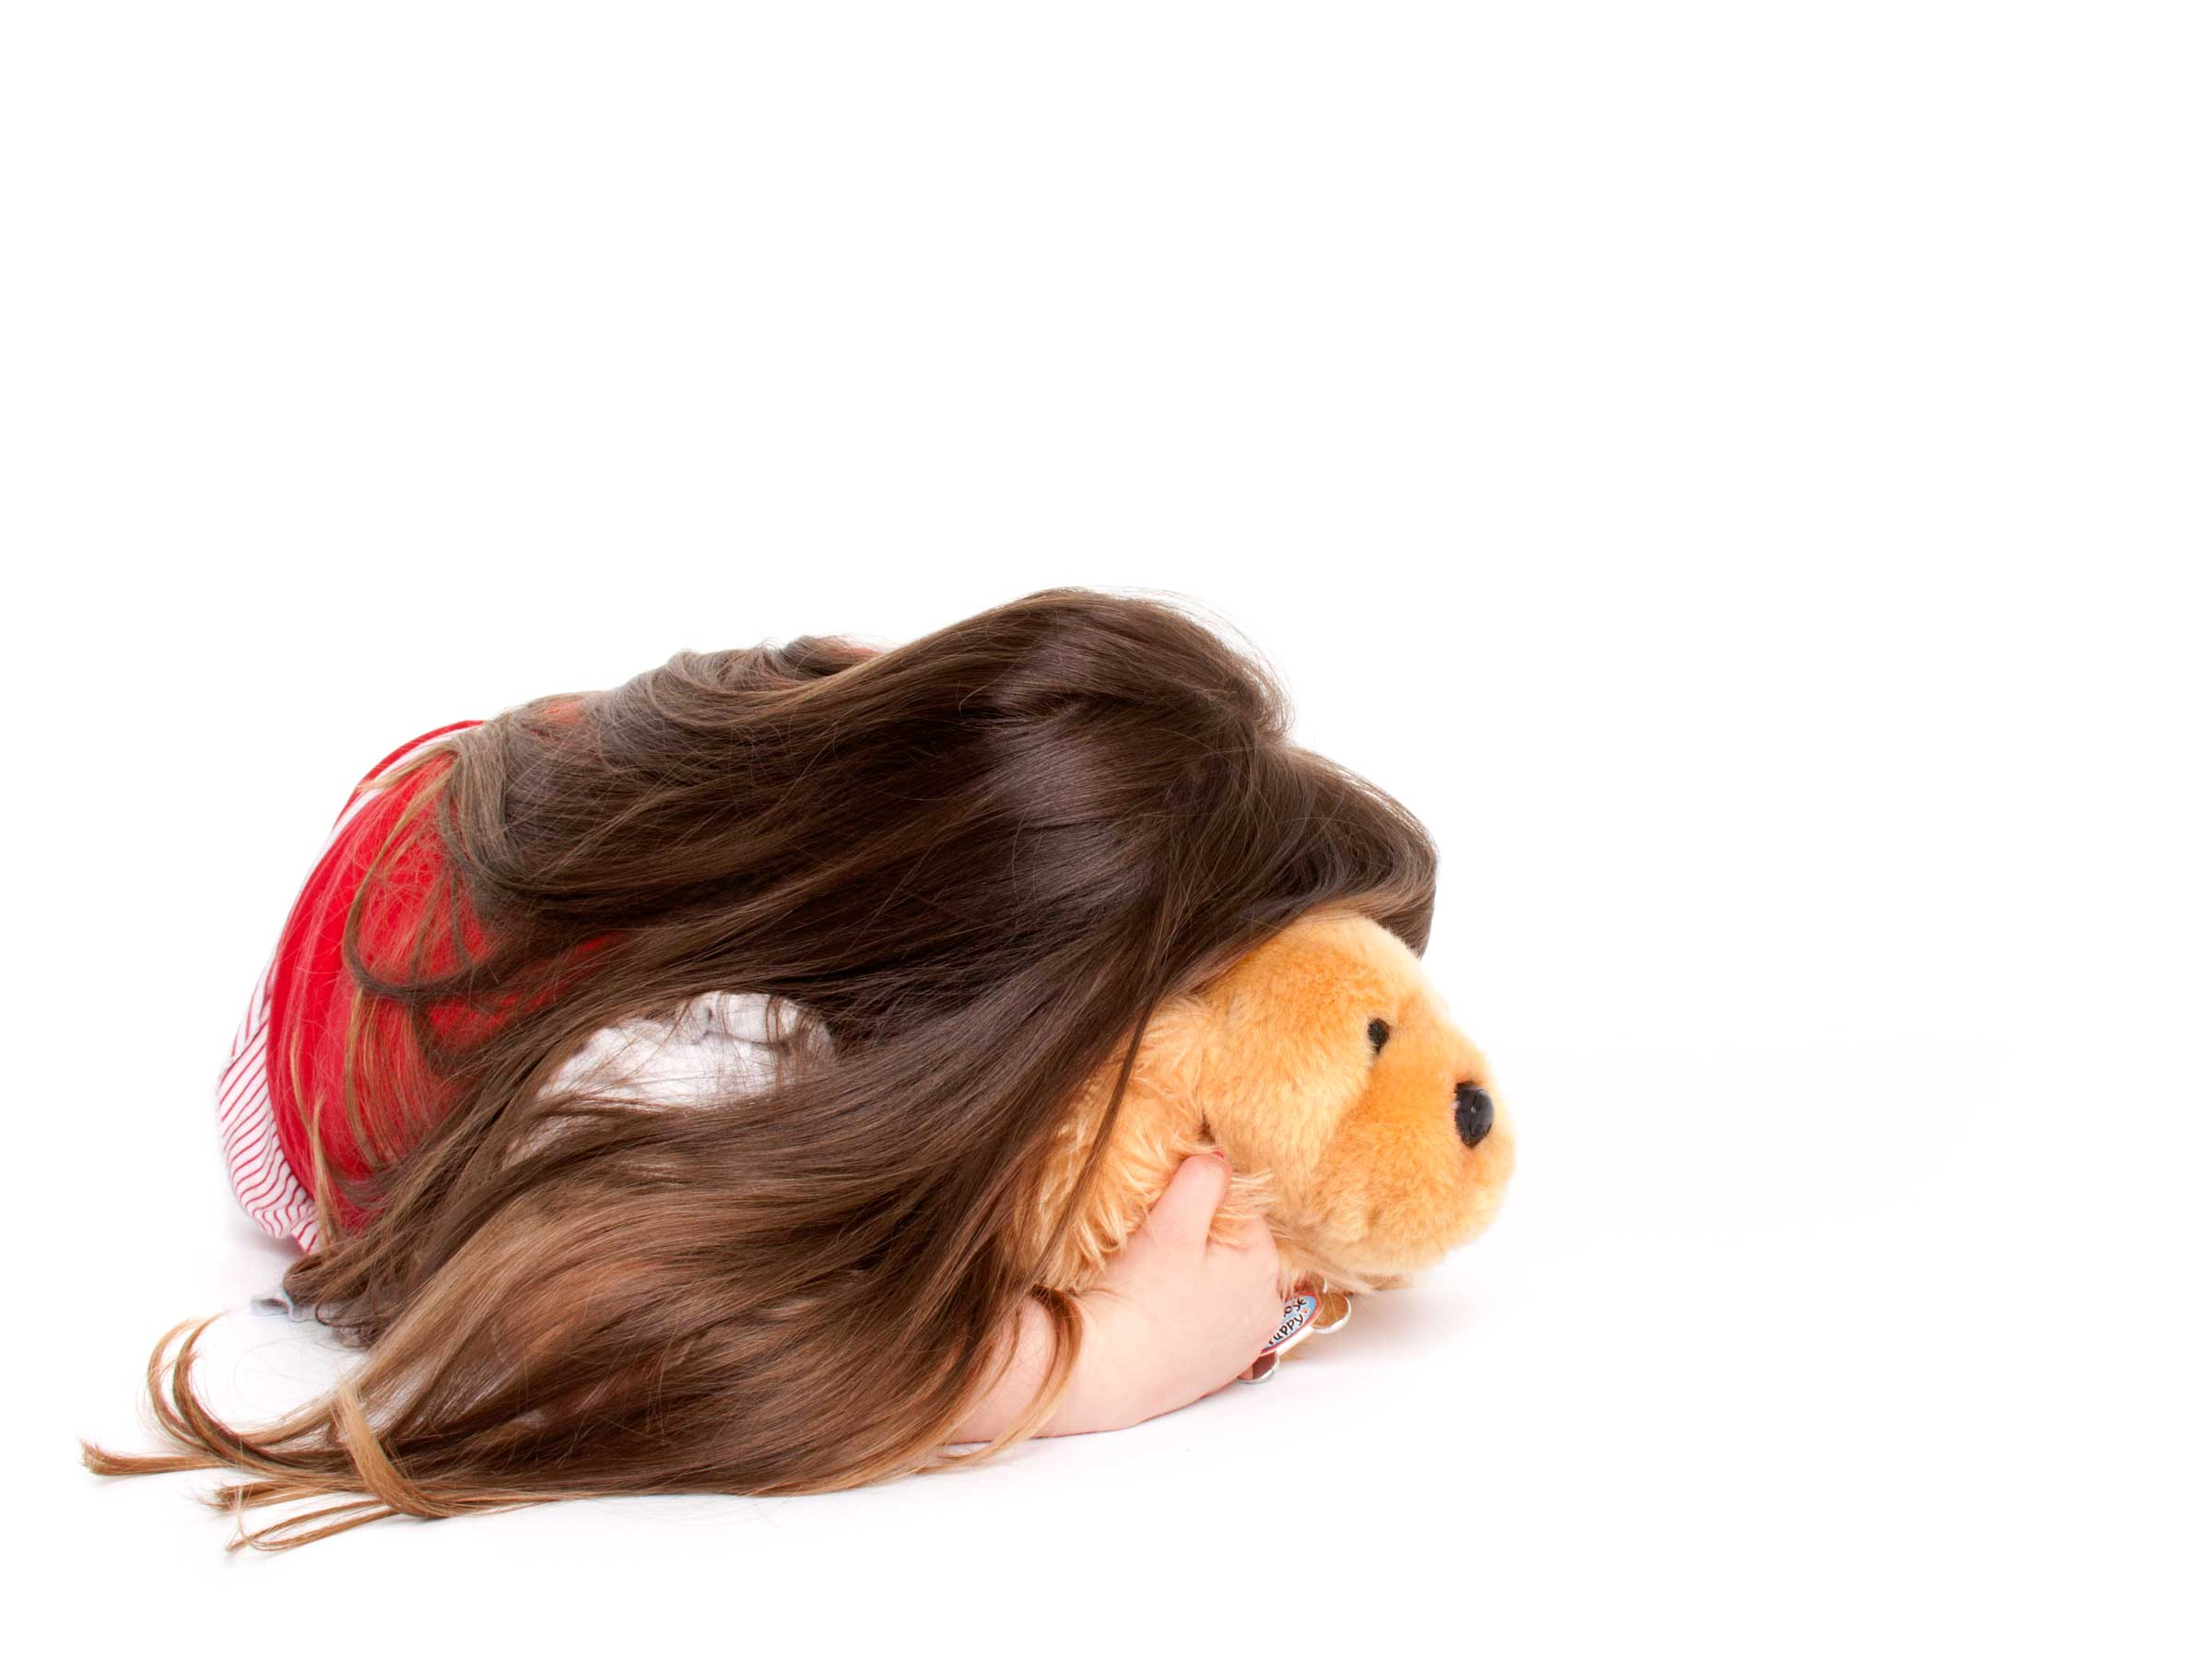 28-Home-Shoot-Toddler-Lying-Down-Teddy-Long-Hair-Colour-Philip-Murray-Photography-Dublin